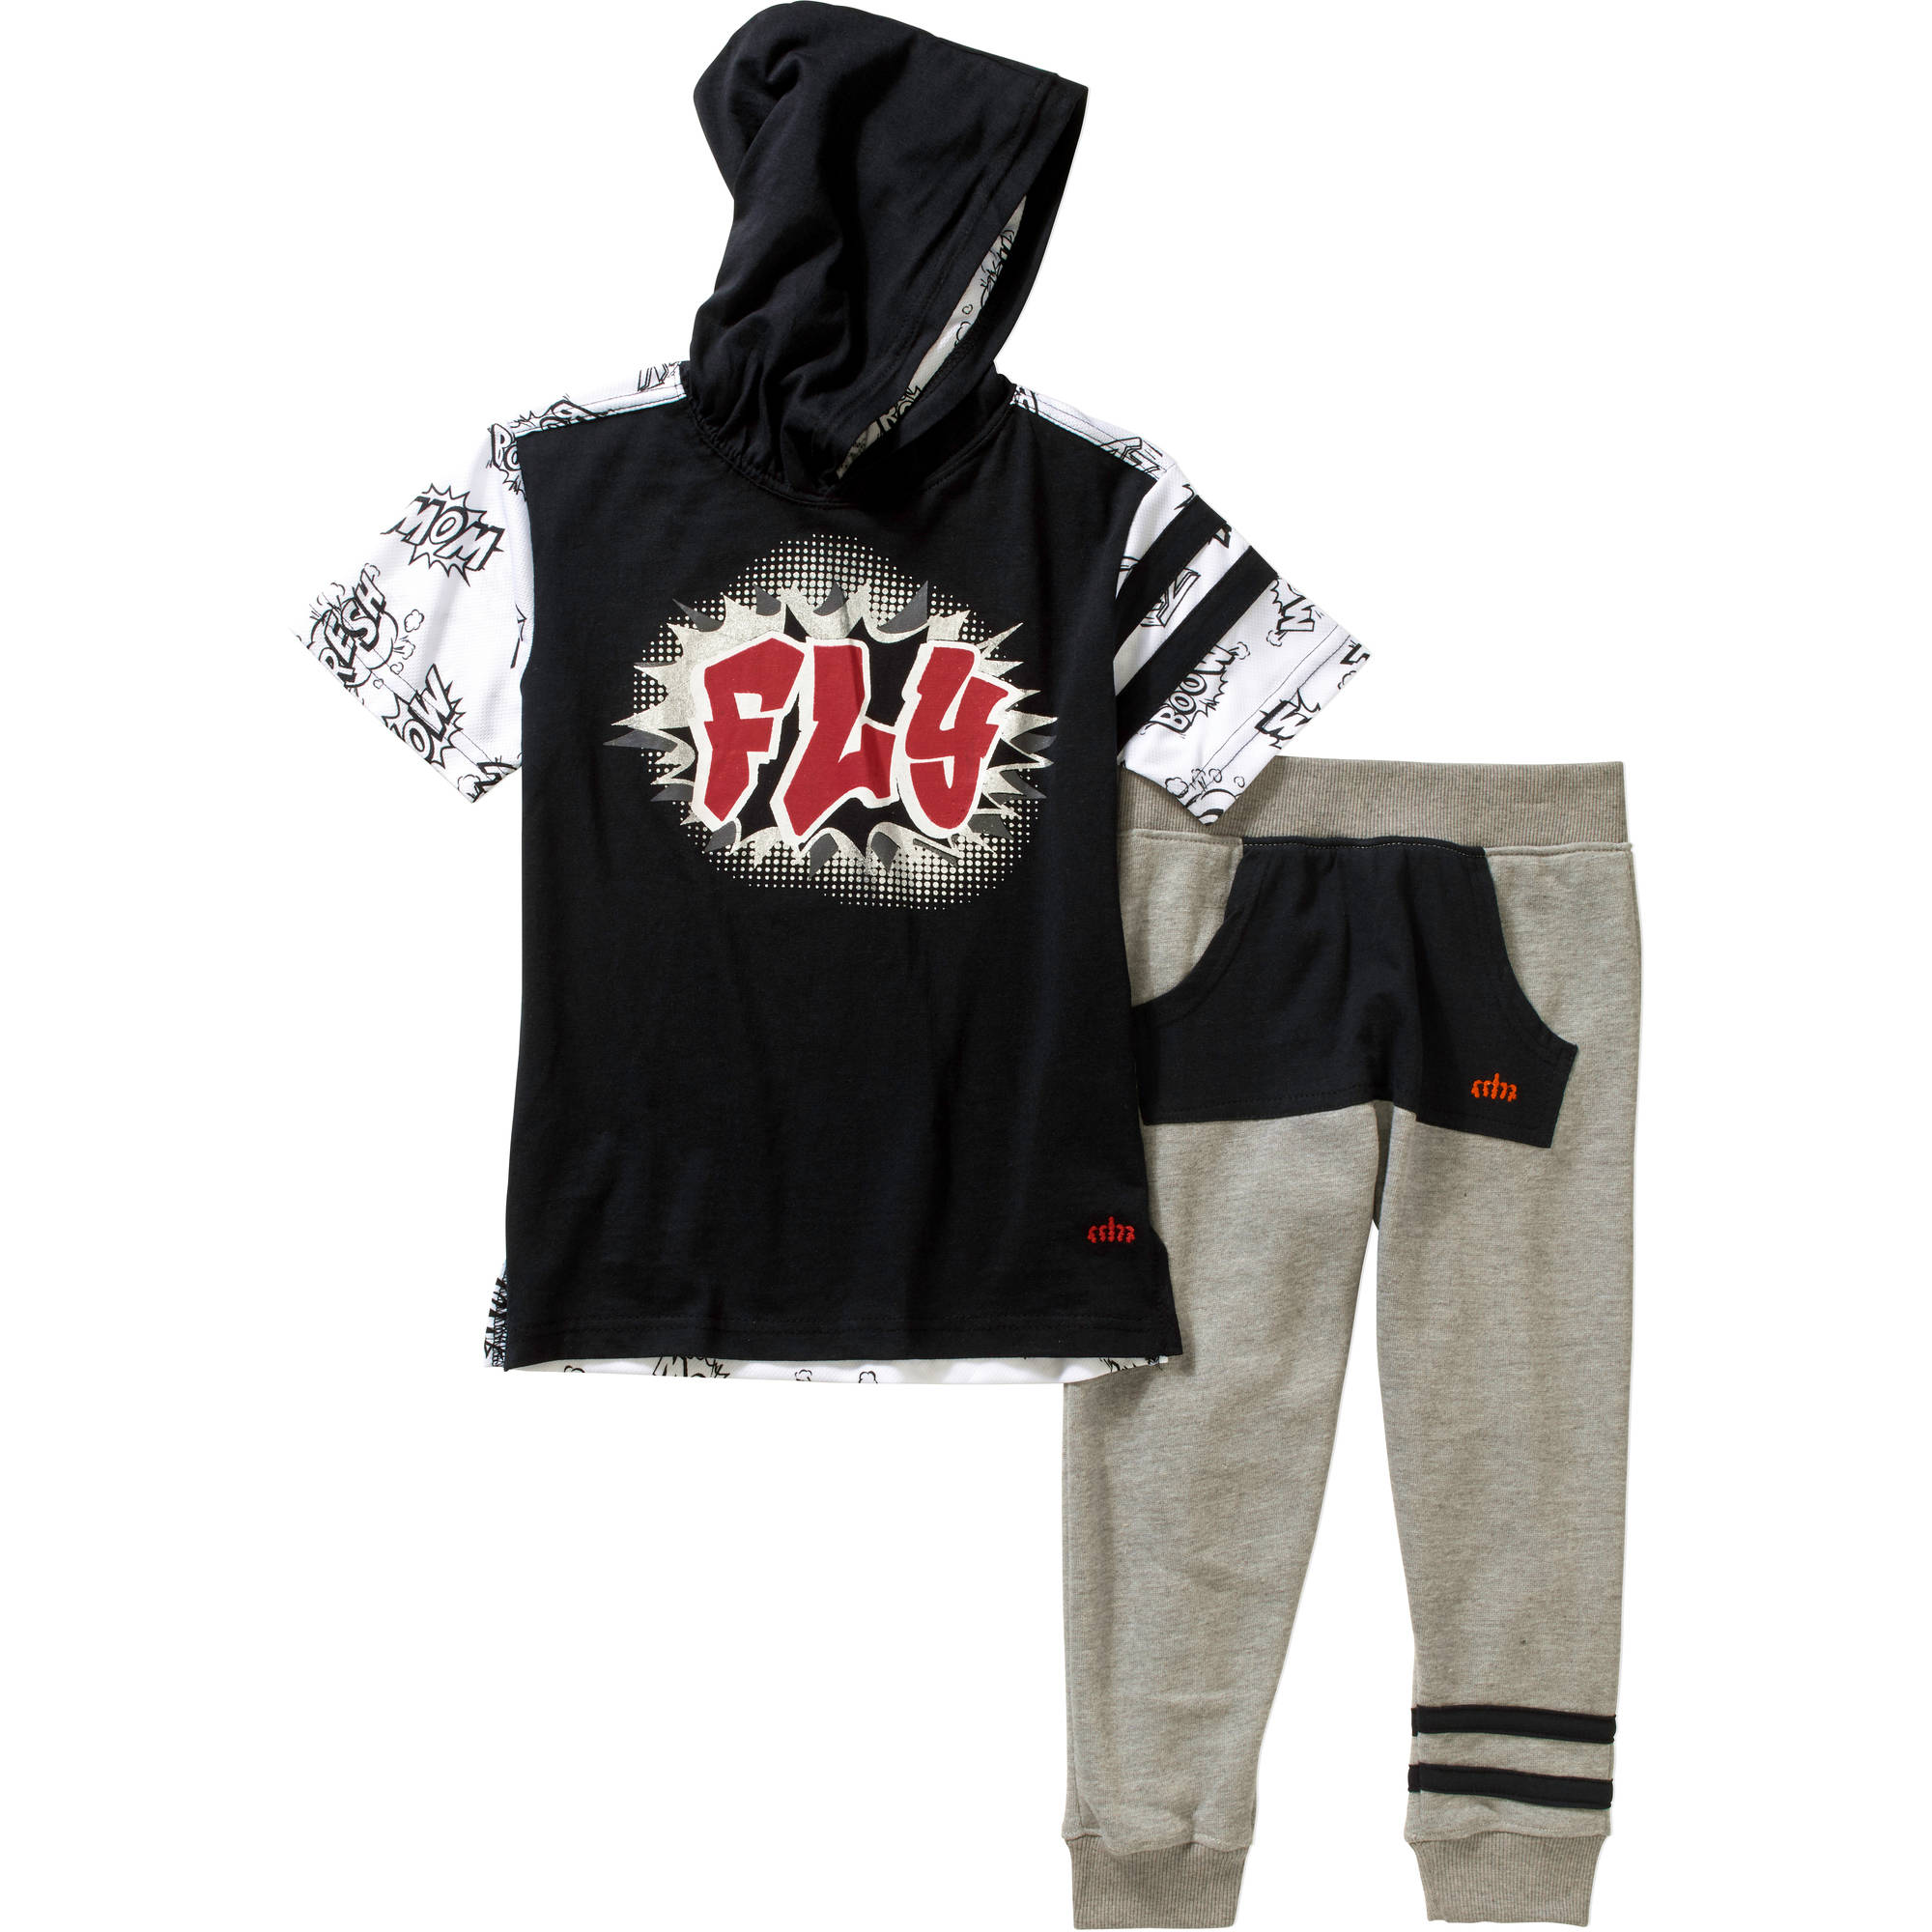 Blac Label Little Boys' Short Sleeve Tee with Fleece Jogger Set